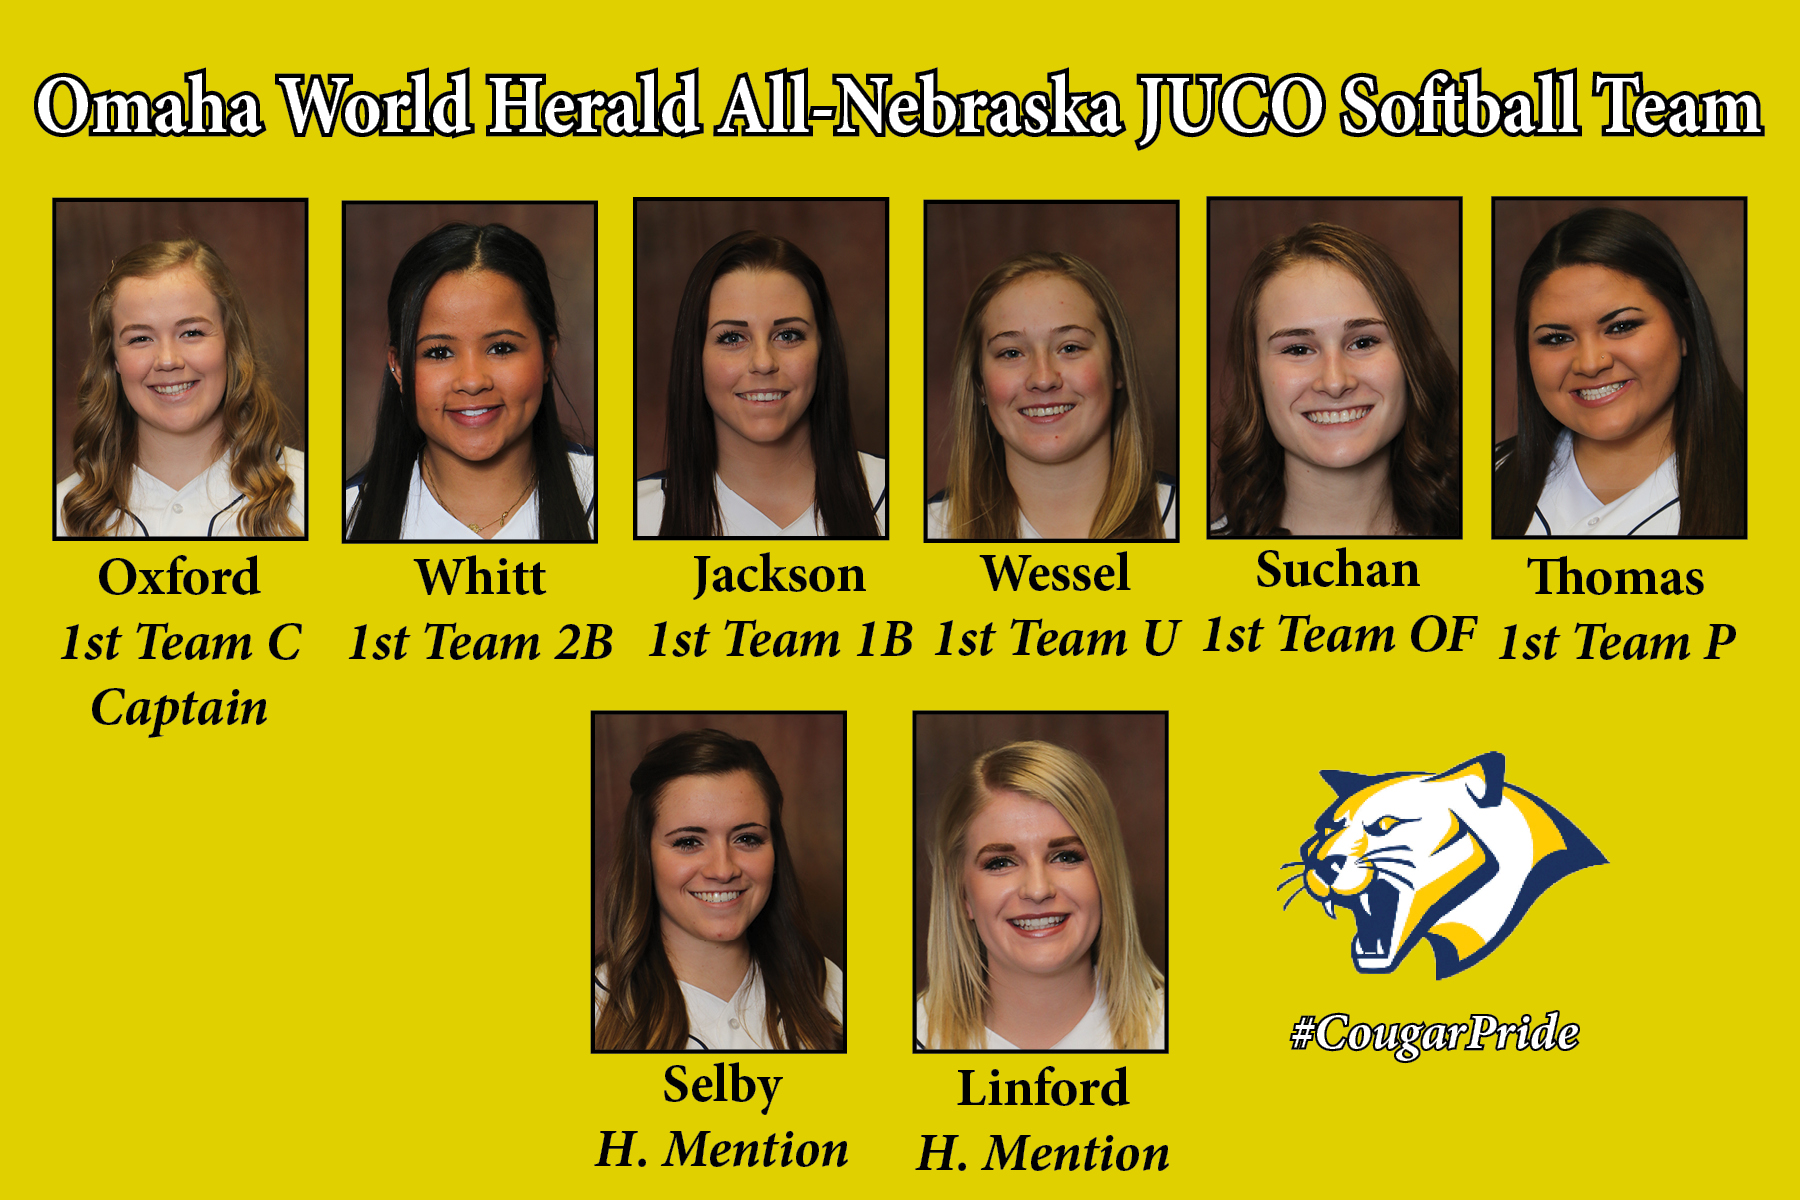 Eight WNCC softball players make JUCO All-Nebraska team